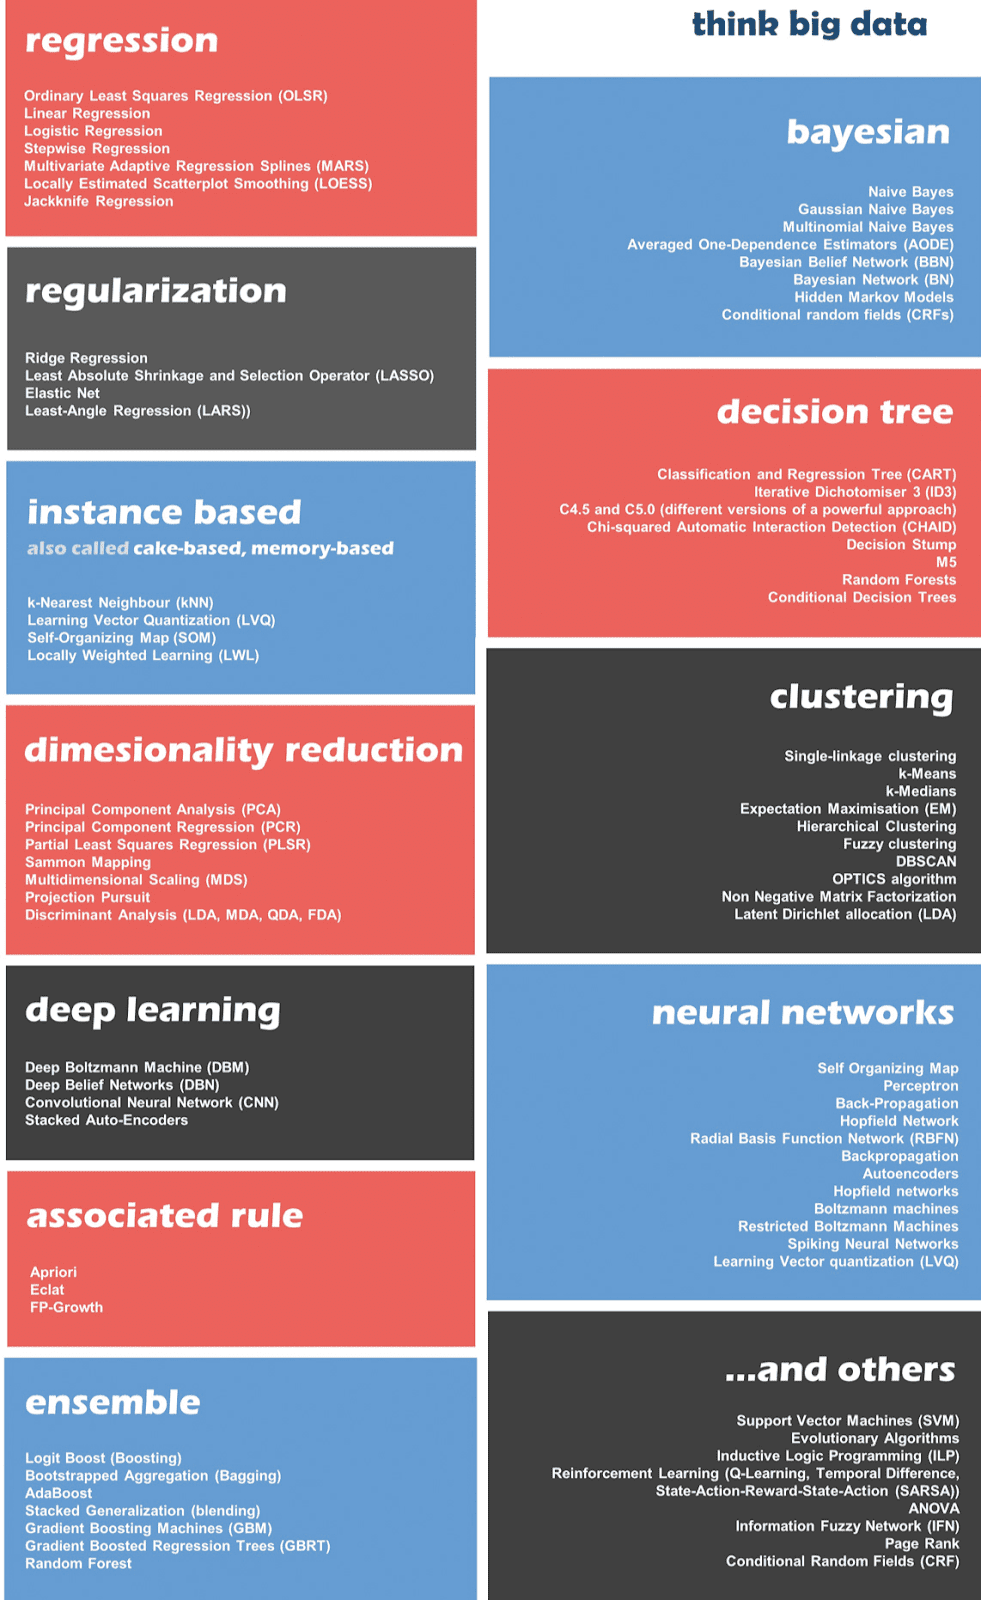 Top 10+ Most Important Algorithms Every Data Scientist Should Know